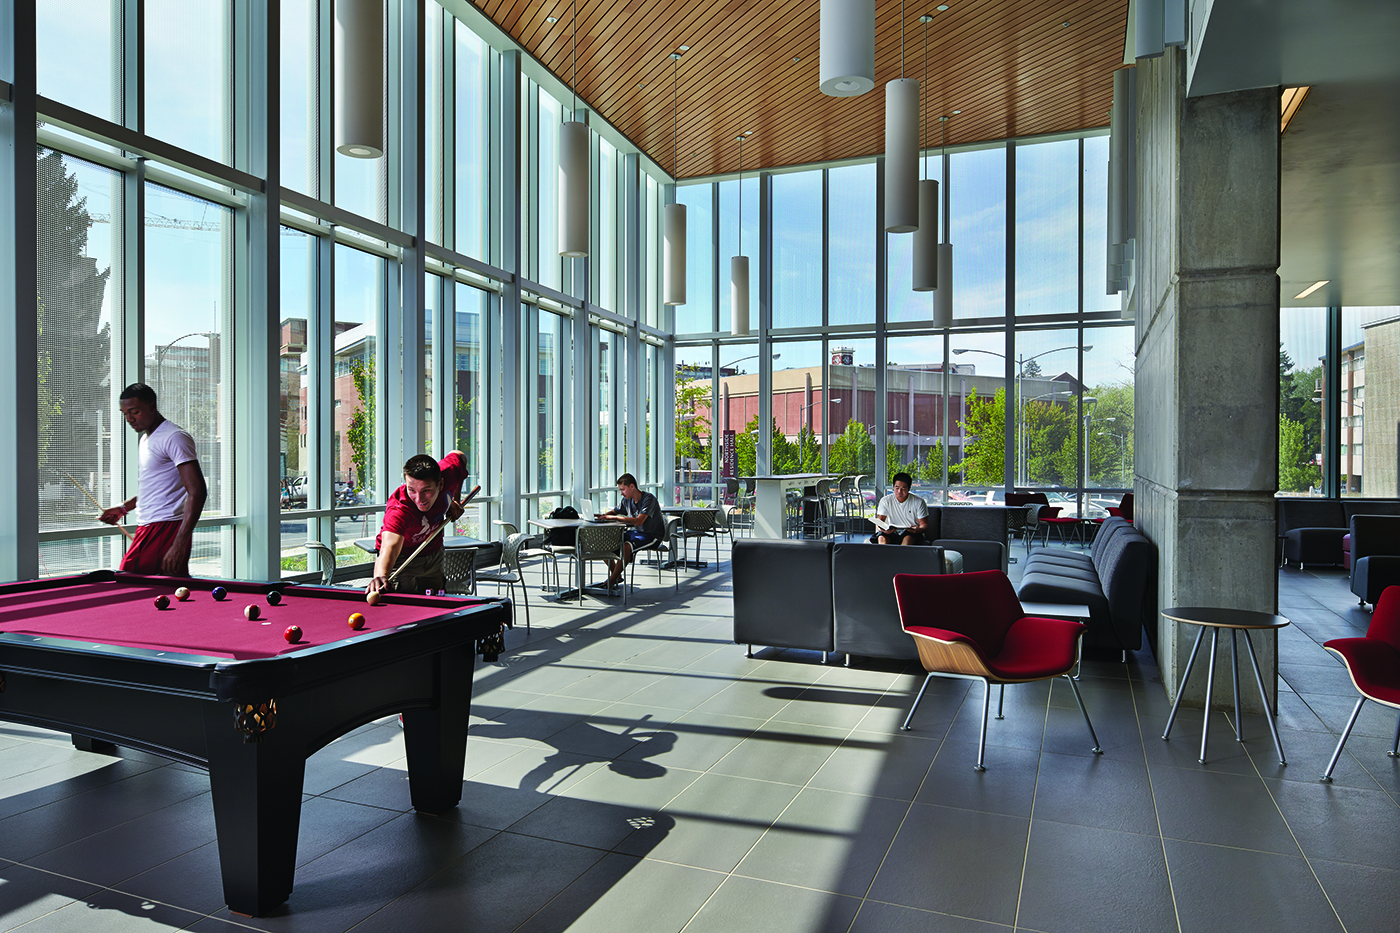 Bellevue College Interior Design Interesting Seattle Djc Local Business News And Data  Construction . Inspiration Design